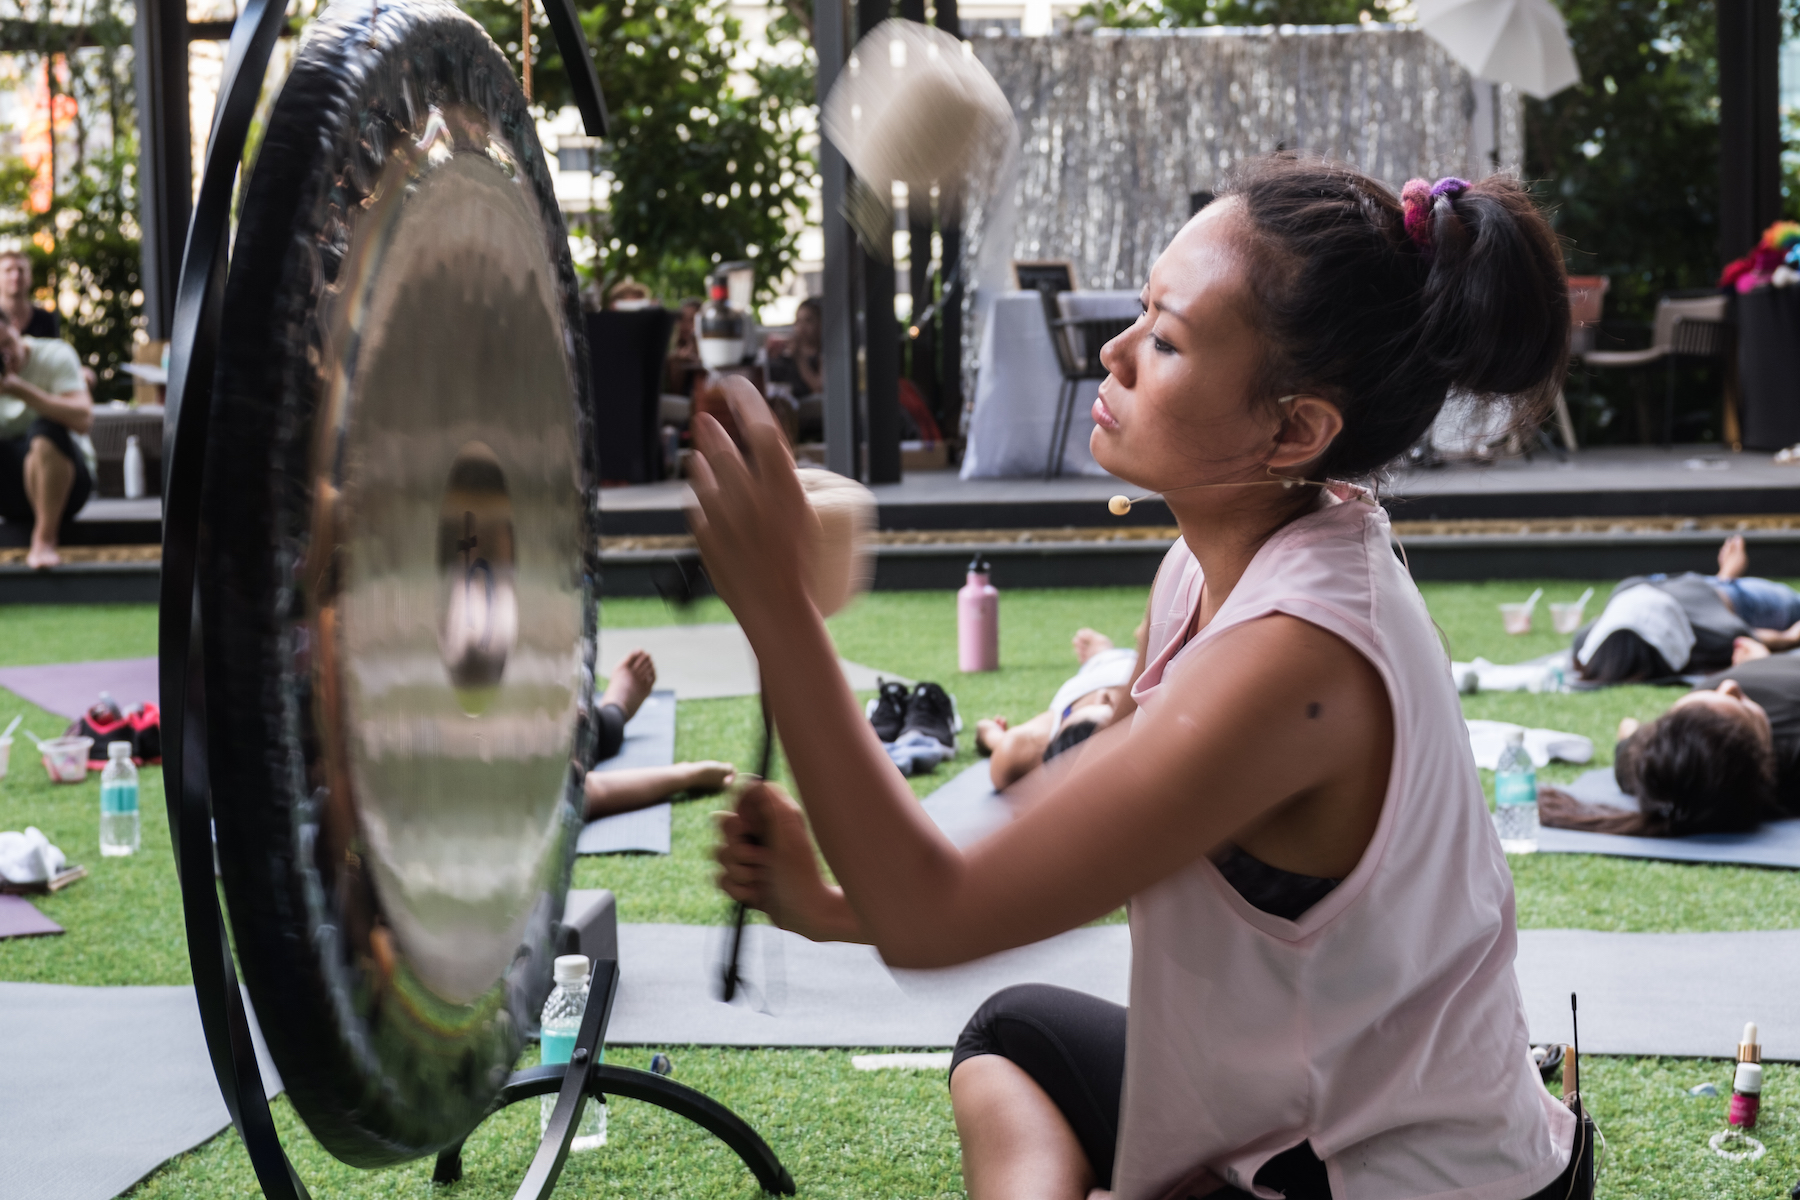 gong meditation sound therapy